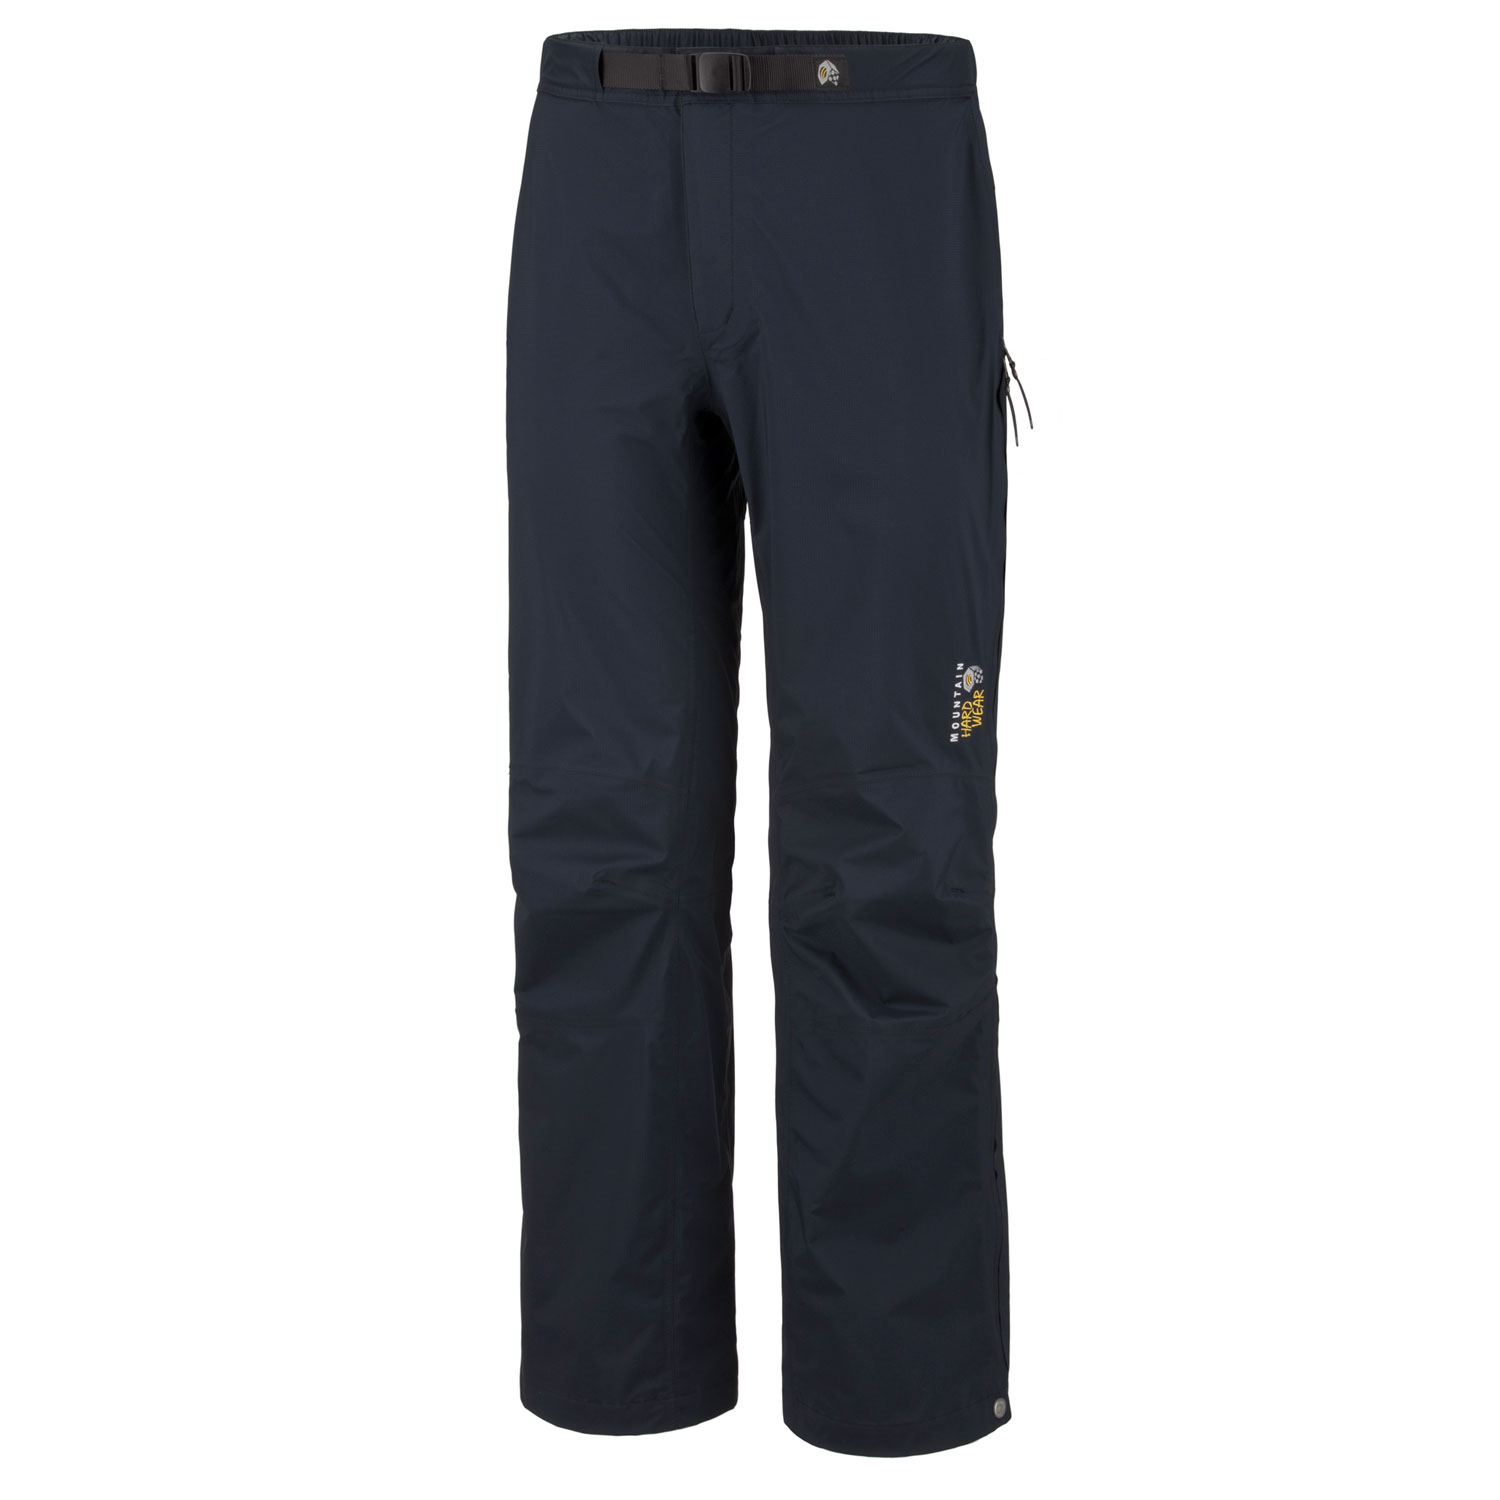 "Camp and Hike Key Features of the Mountain Hardwear Stretch Cohesion Hiking Pants: Avg weight: 9 oz; 257g Inseam: 32"" Fabric: Ark Stretch 30D 2,5 Layer (100% nylon) All over stretch for comfort and freedom of movement Adjustable waist with integrated belt for a custom fit 3/4 side leg zips for ventilation and easy on/off Reinforced edge guards protect pant legs - $103.95"